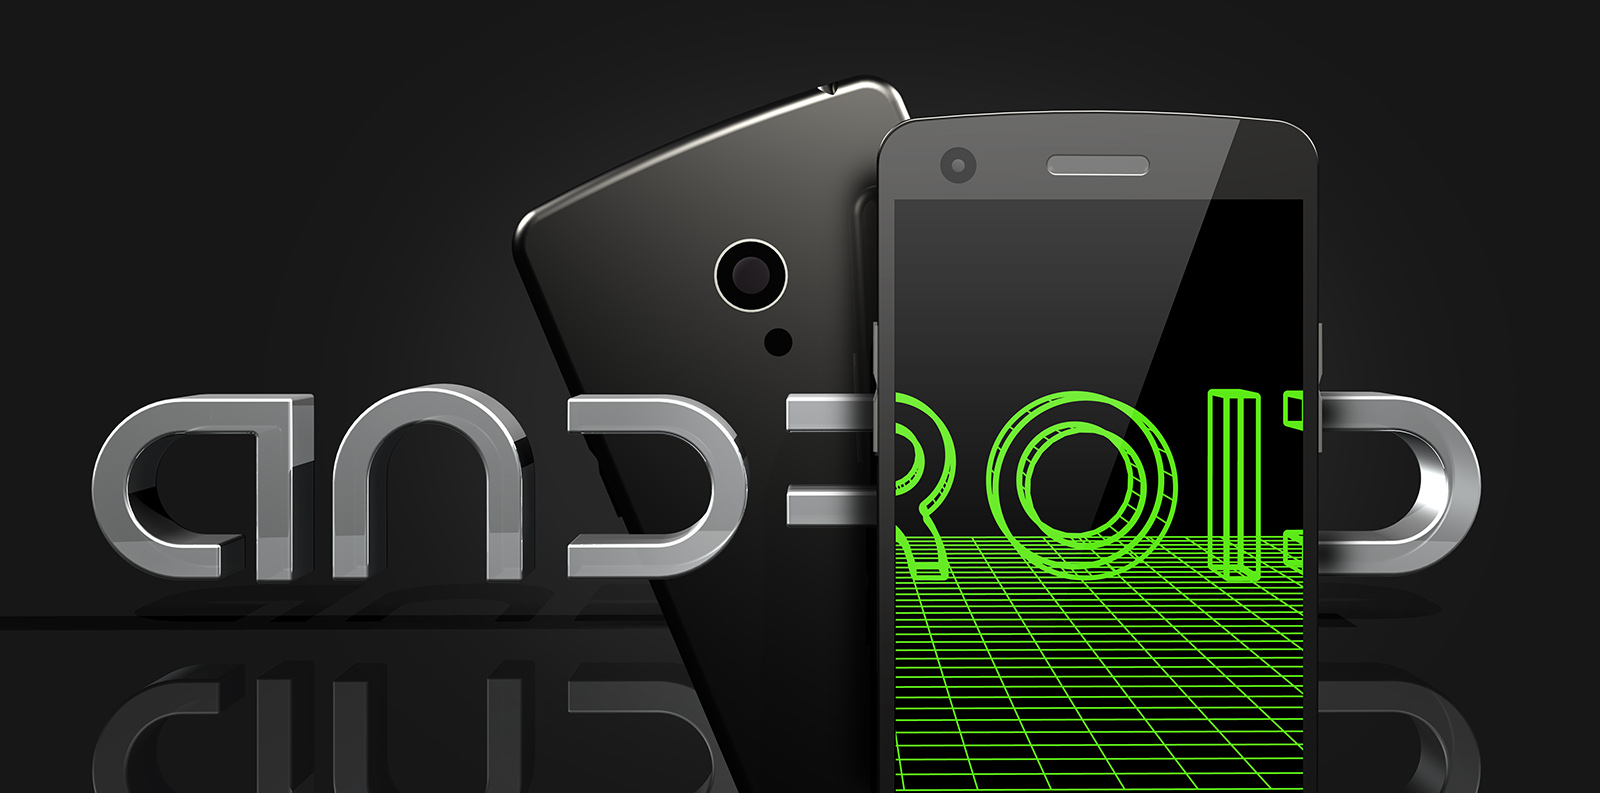 3d illustration of a smartphone placed in front of a chrome metal android logo with the screen revealing a green wireframe